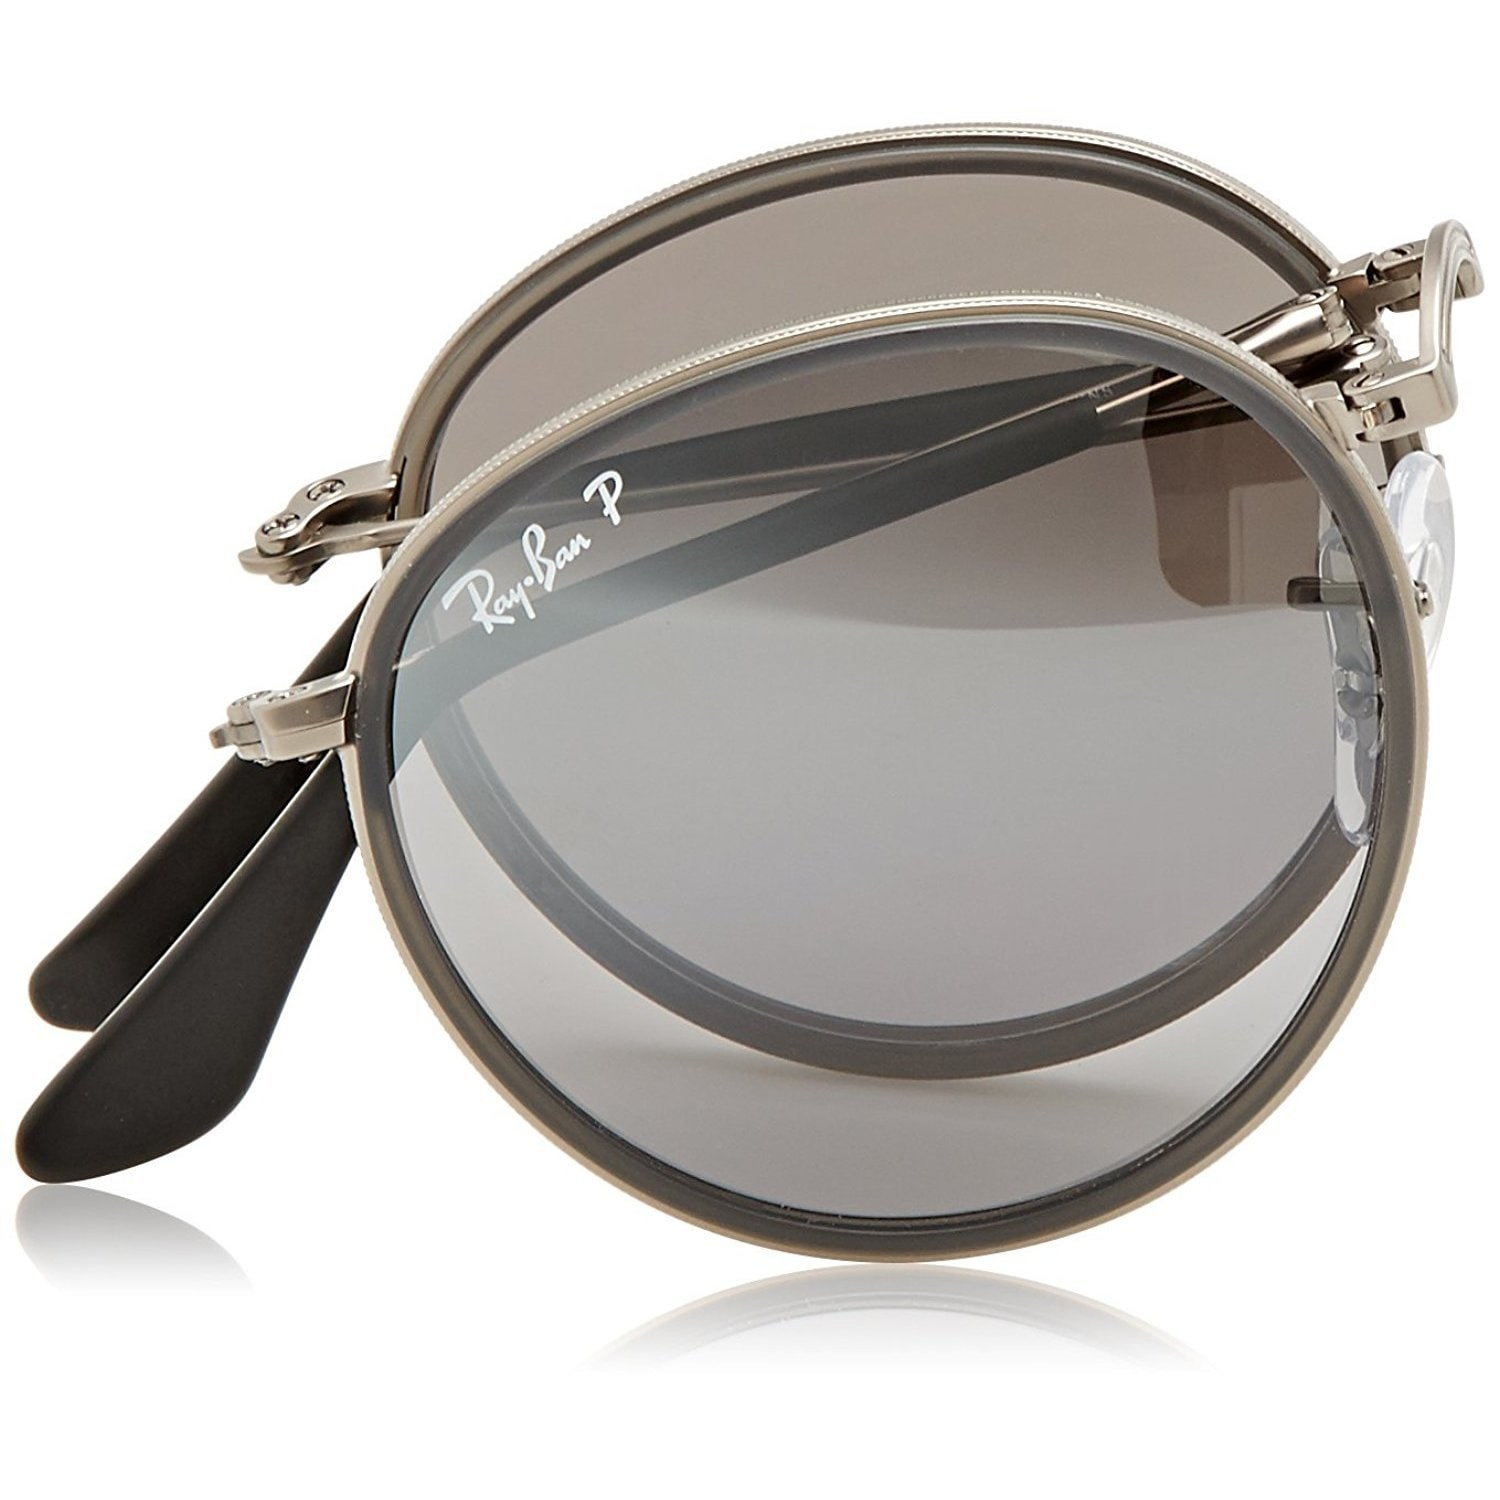 20af98cf0d62 Shop Ray-Ban Round Folding RB3517 029/N8 Unisex Gunmetal Frame Polarized  Silver Gradient Lens Sunglasses - Free Shipping Today - Overstock - 15079508